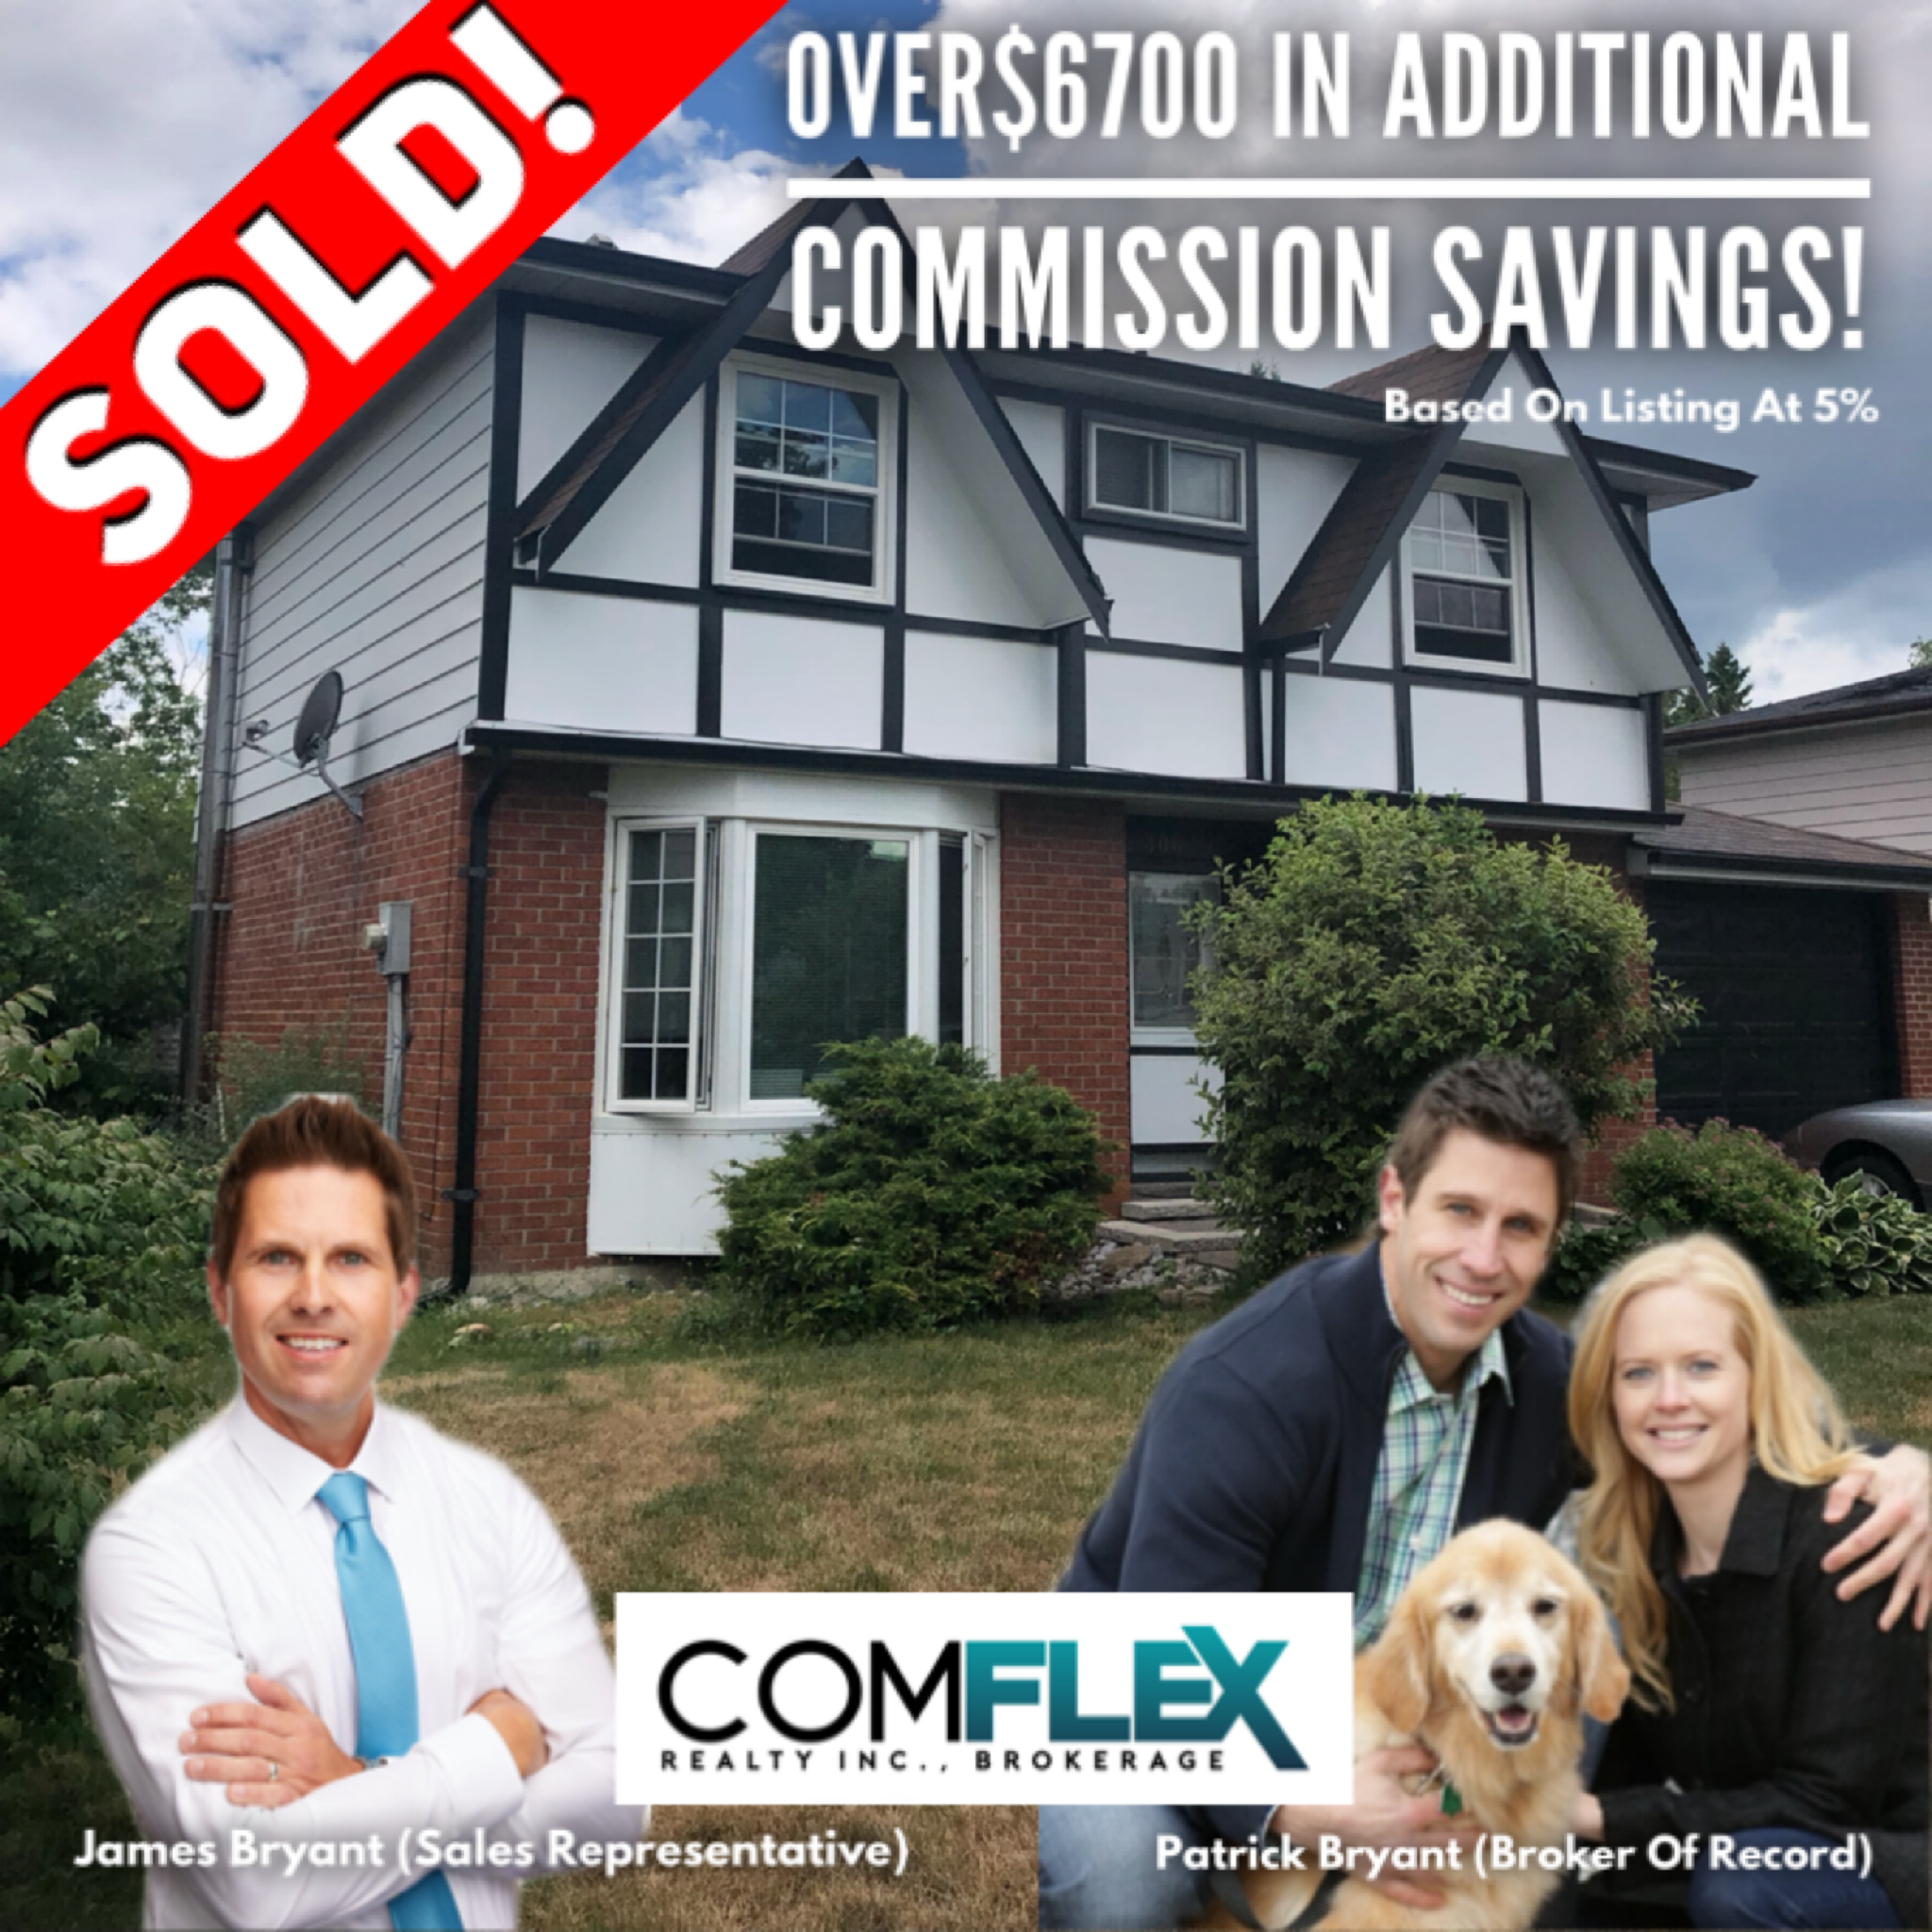 SOLD! OVER $6700 IN ADDITIONAL COMMISSION SAVINGS!